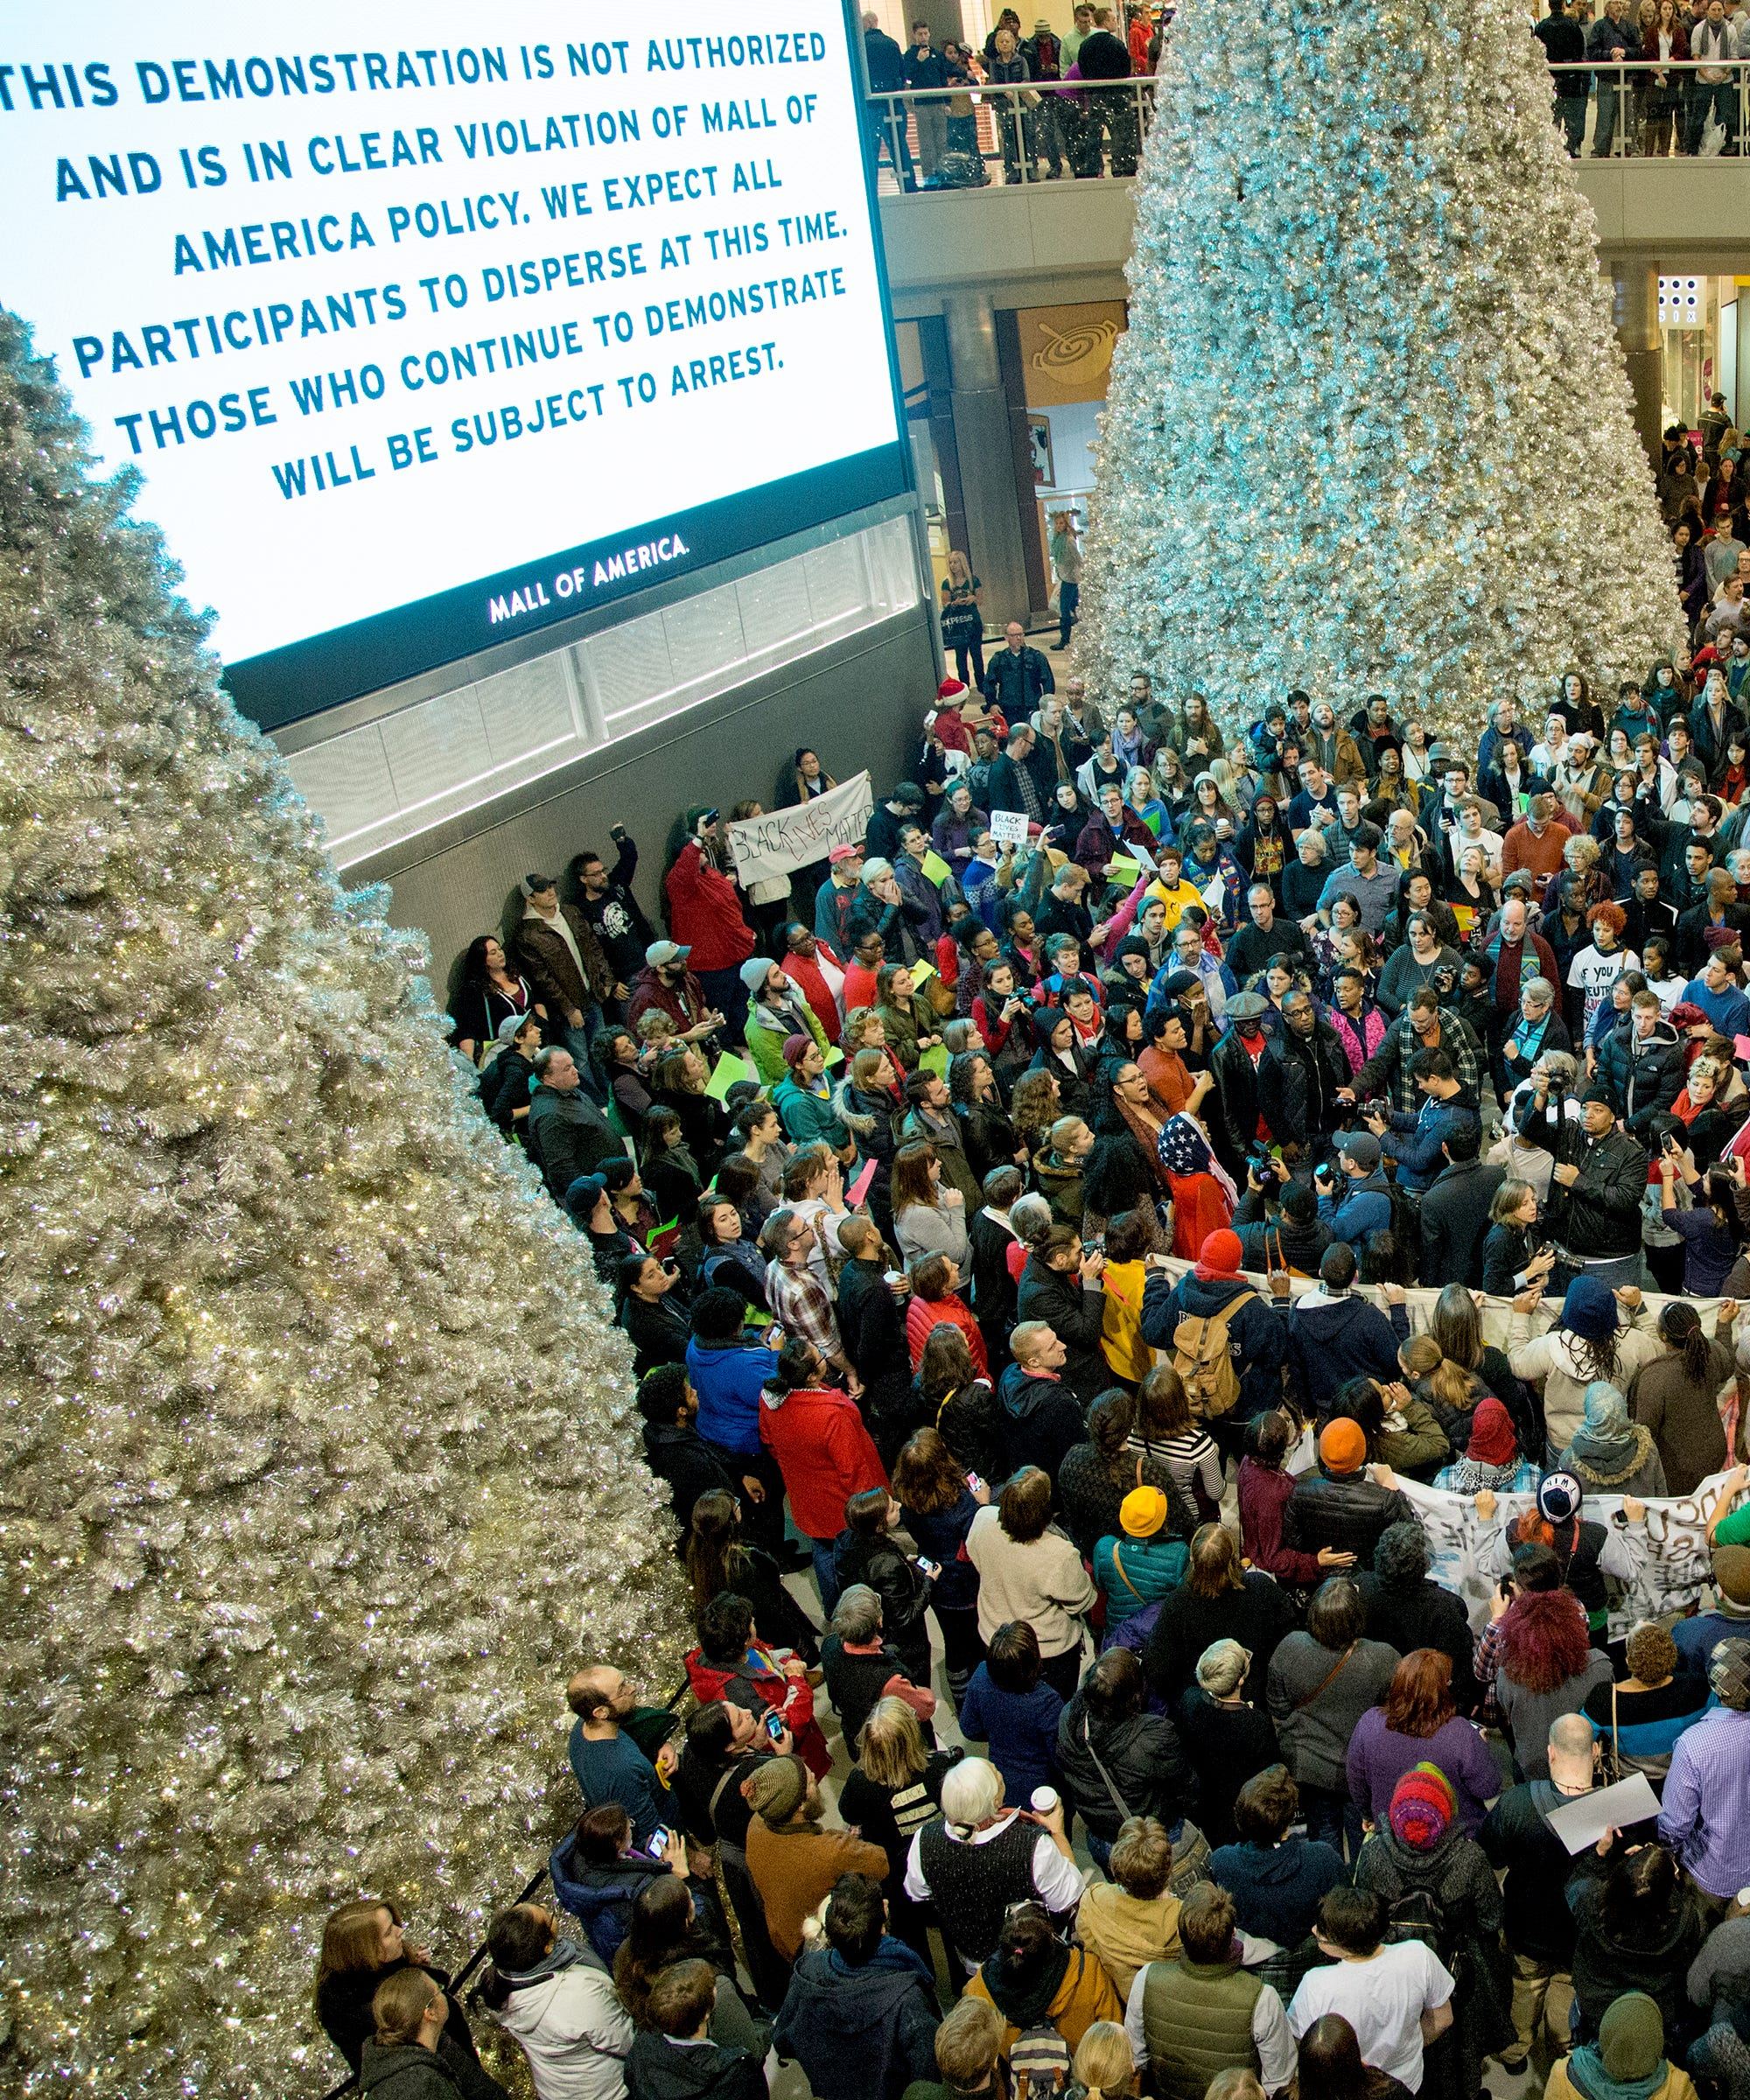 Death of shopping malls mall of america popularity jameslax Images